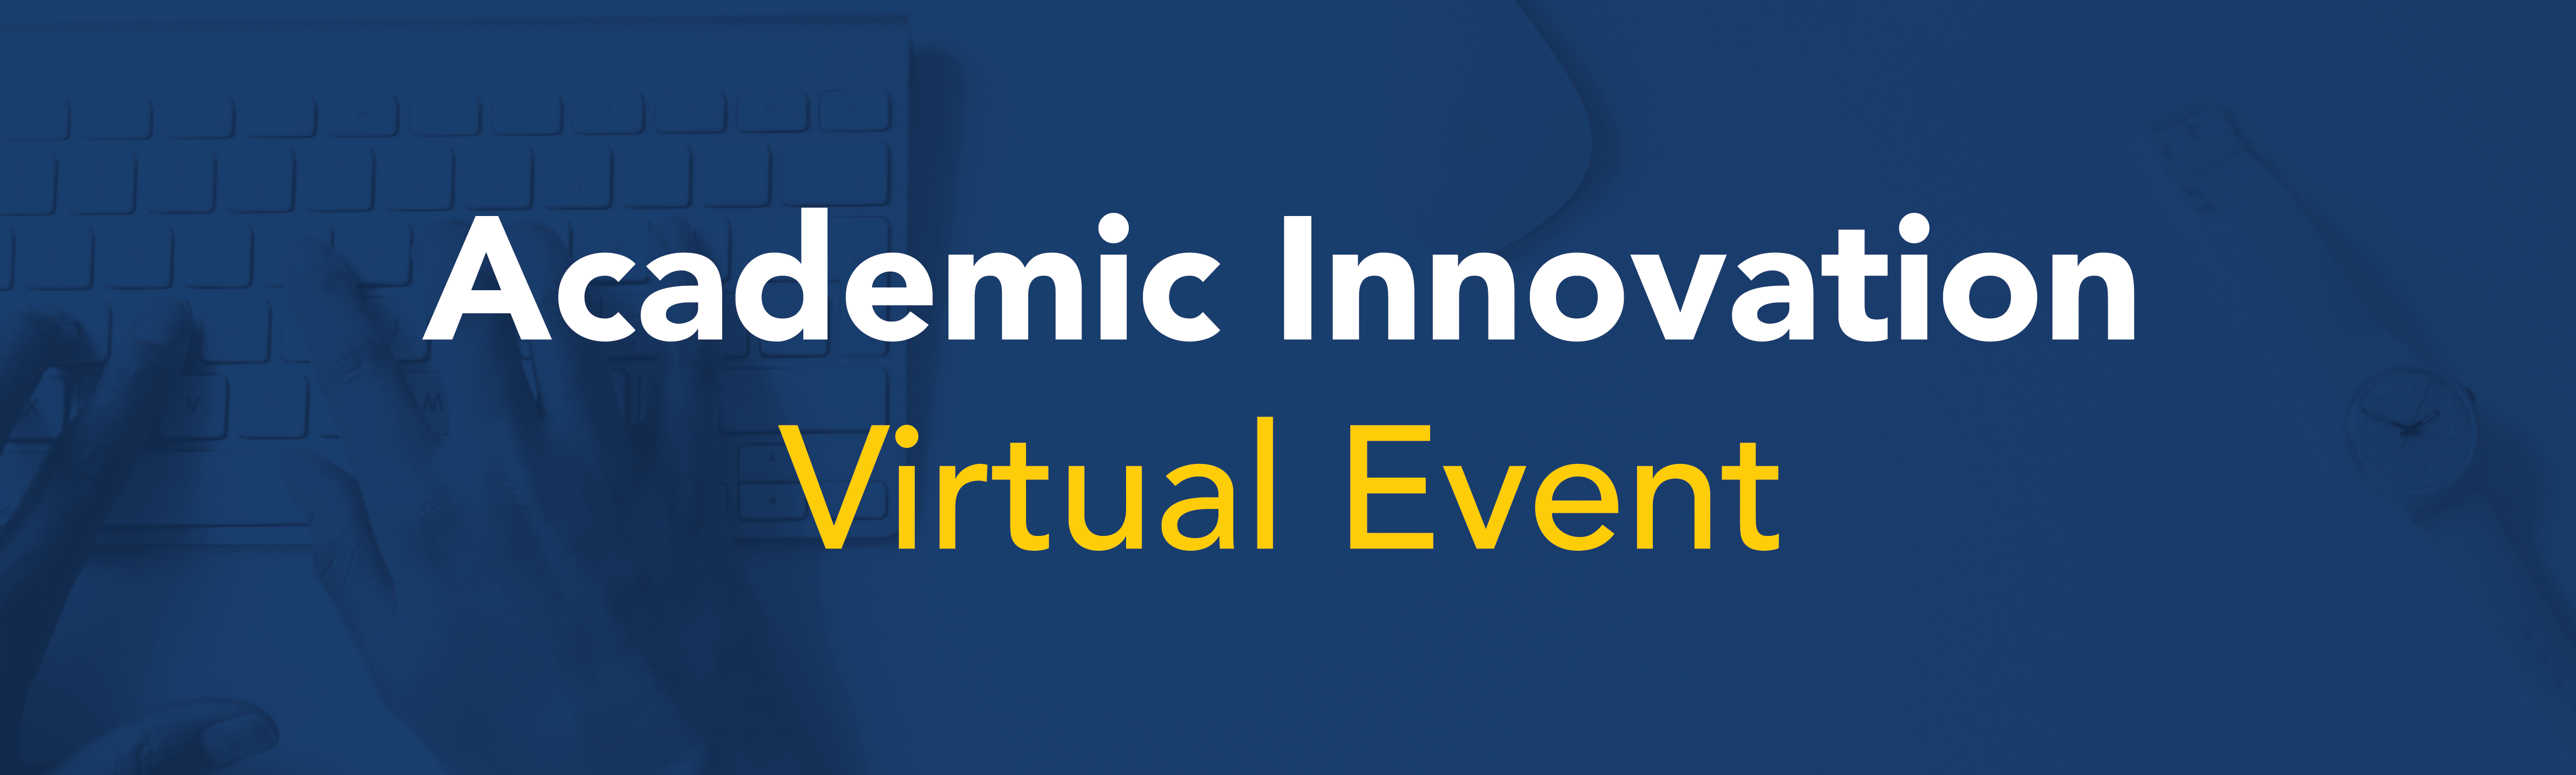 Academic Innovation Virtual Event